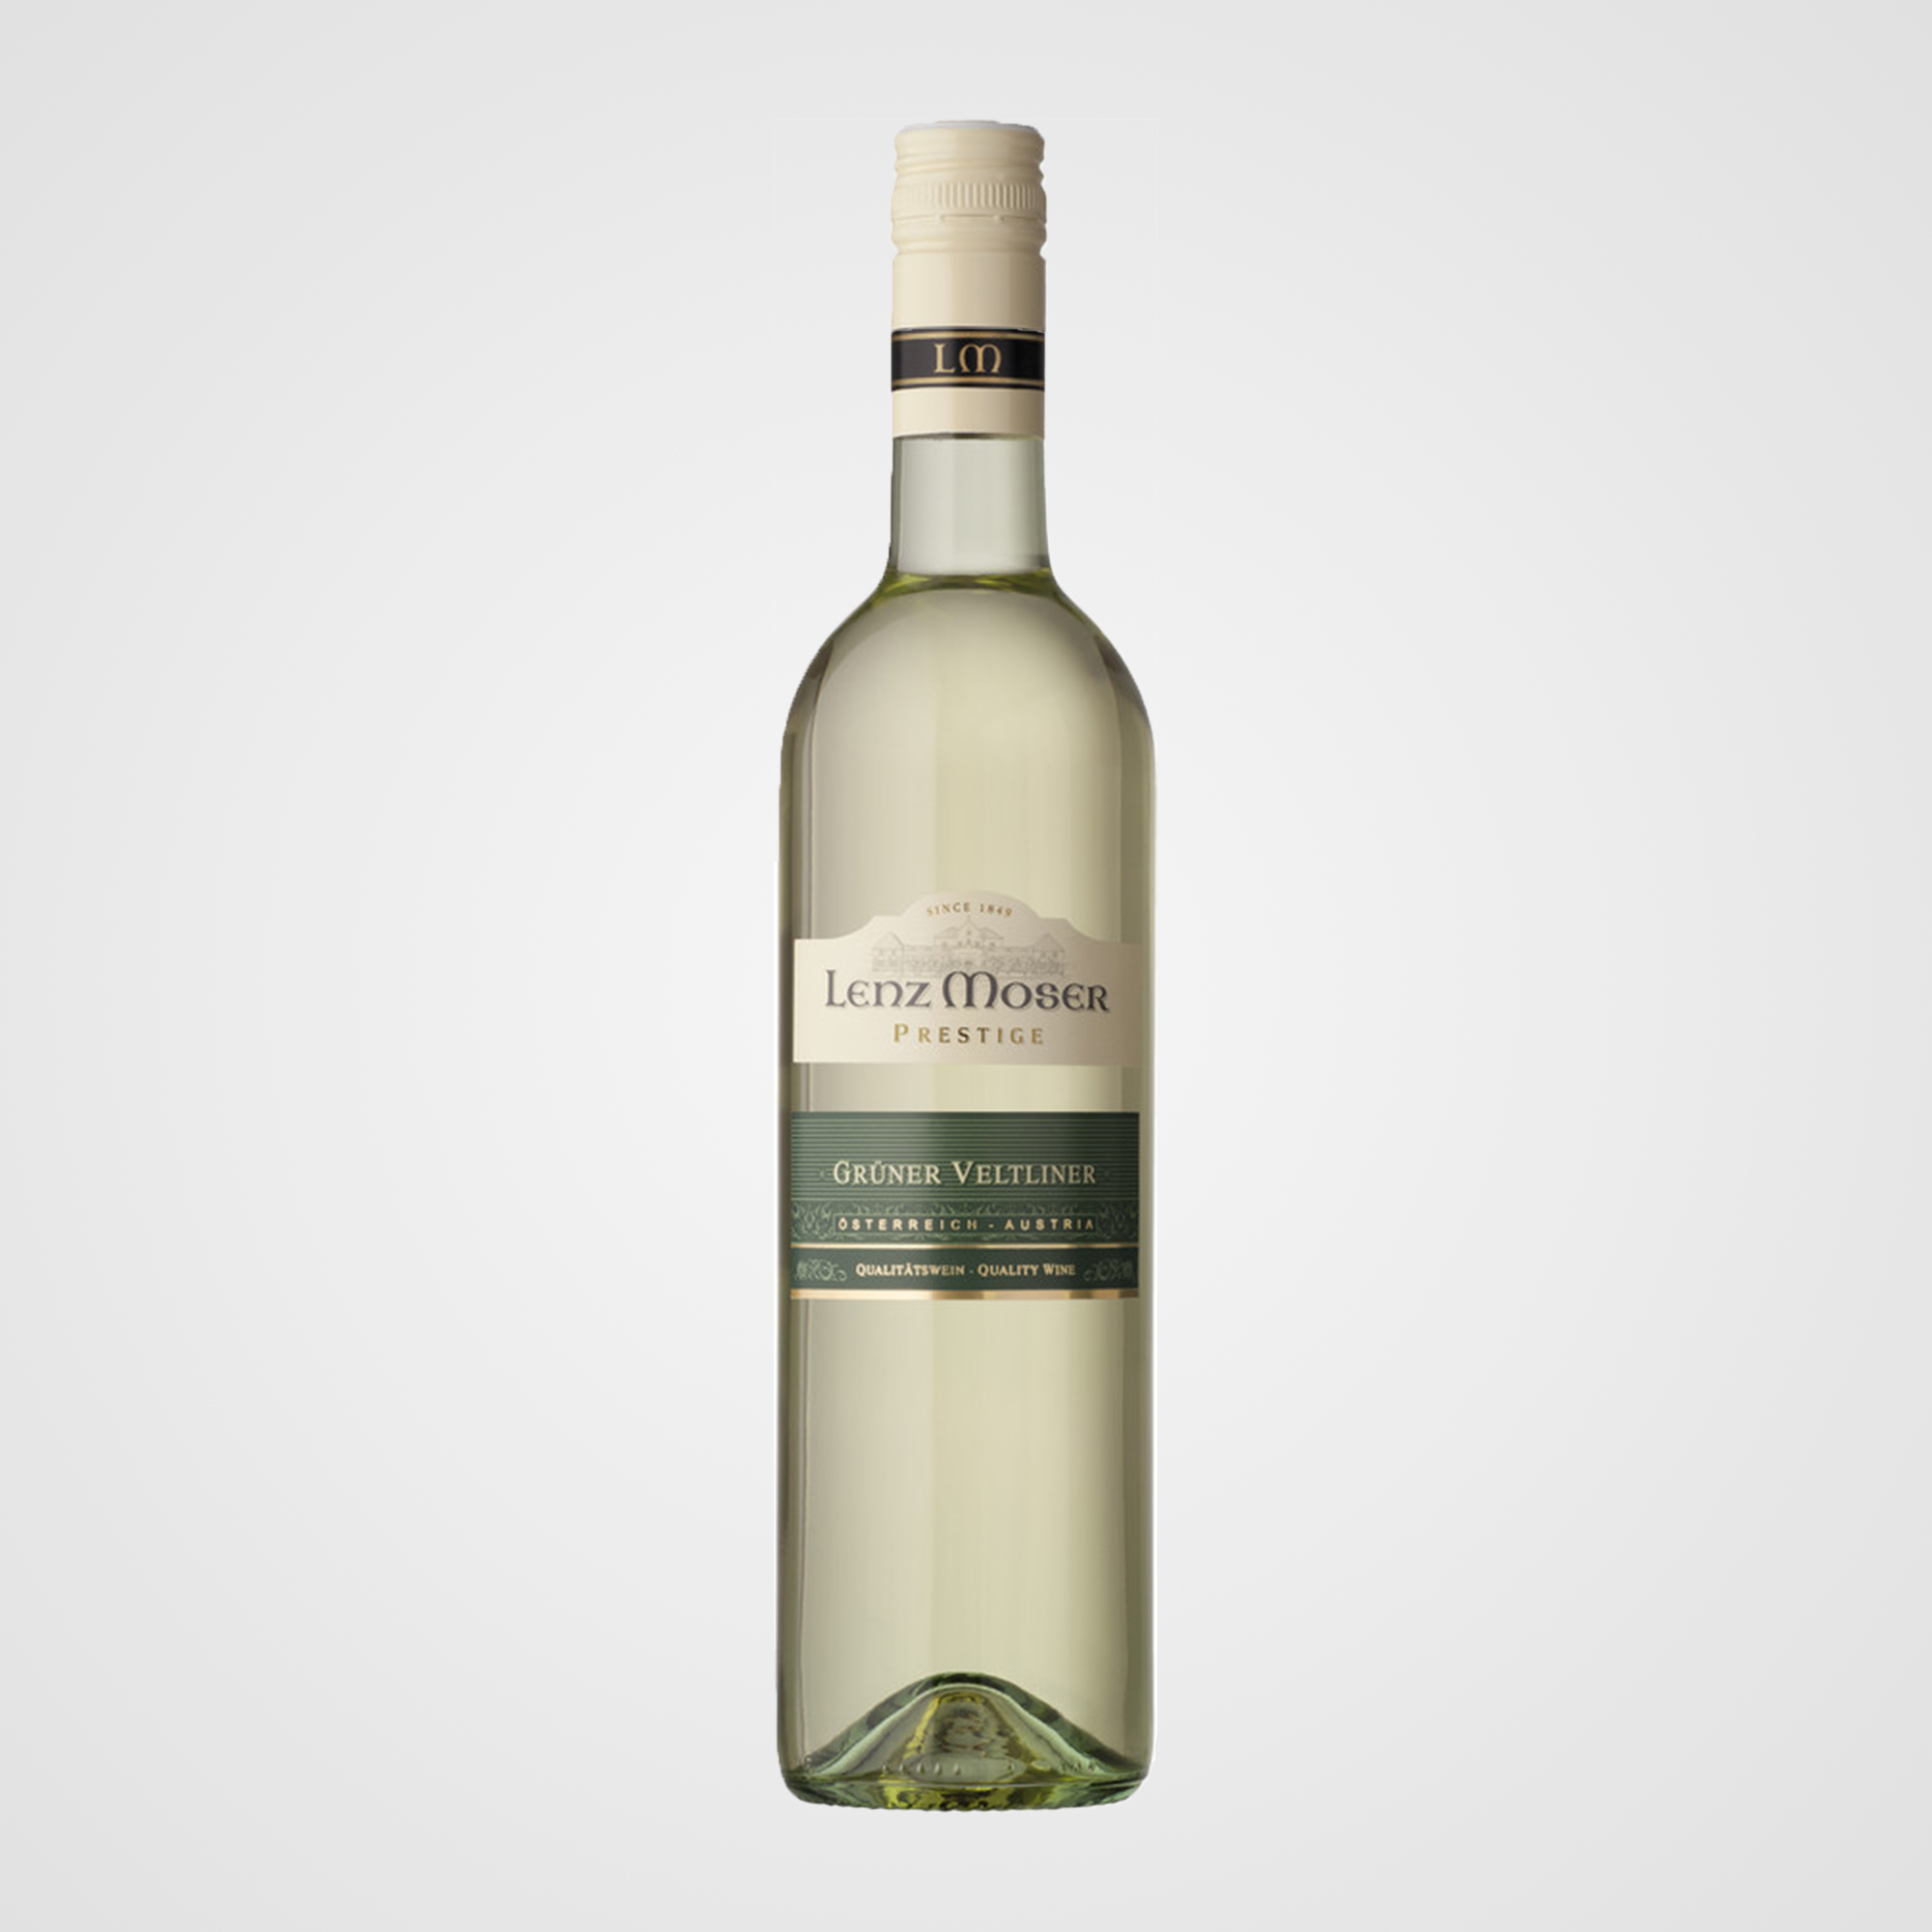 Grüner Veltliner - Quality wine, dry, Austria.Tasting Notes: peppery-spicy, fresh and fruity, harmonious and palatable.12.5% abv.